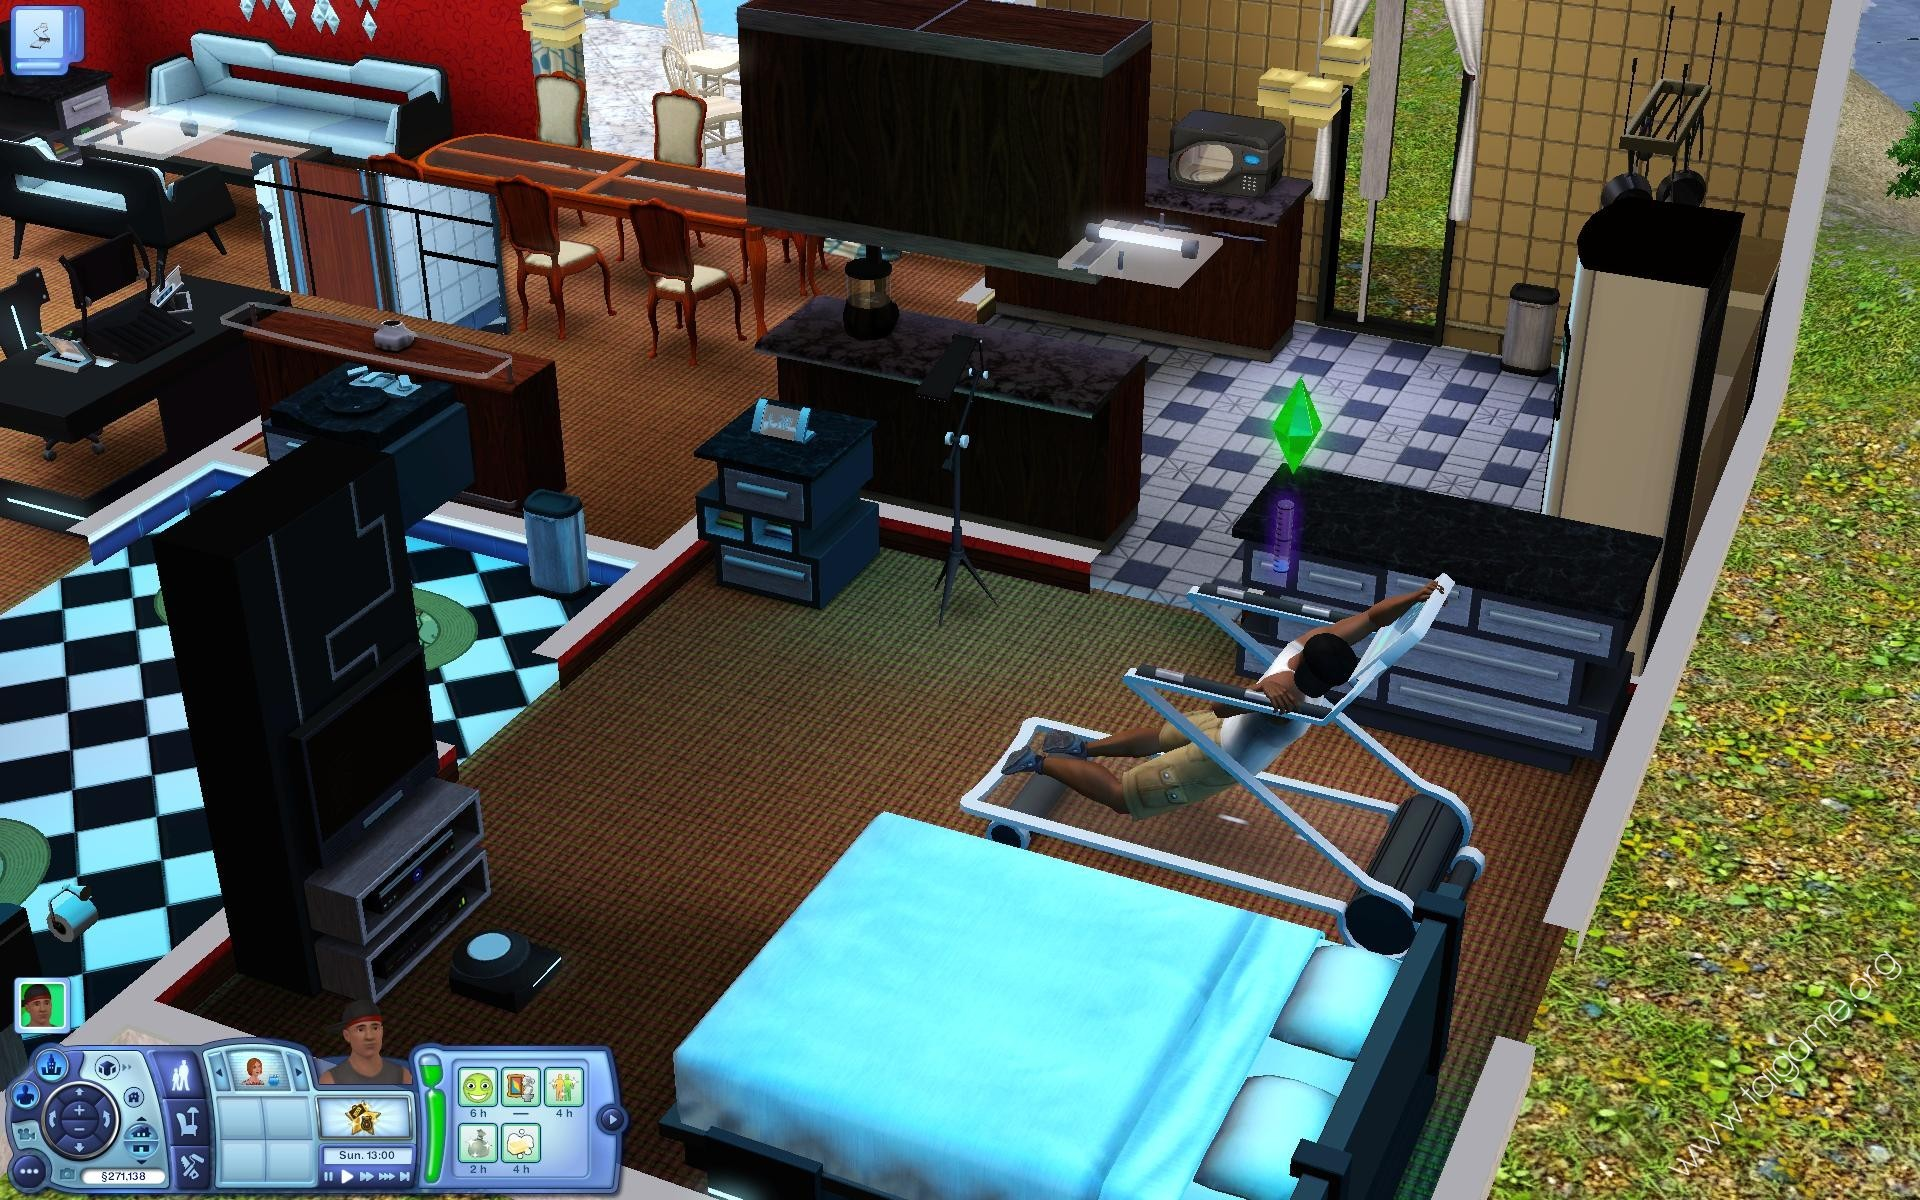 the sims 3 android 1 5 free game download - Forum - Coloriage adulte